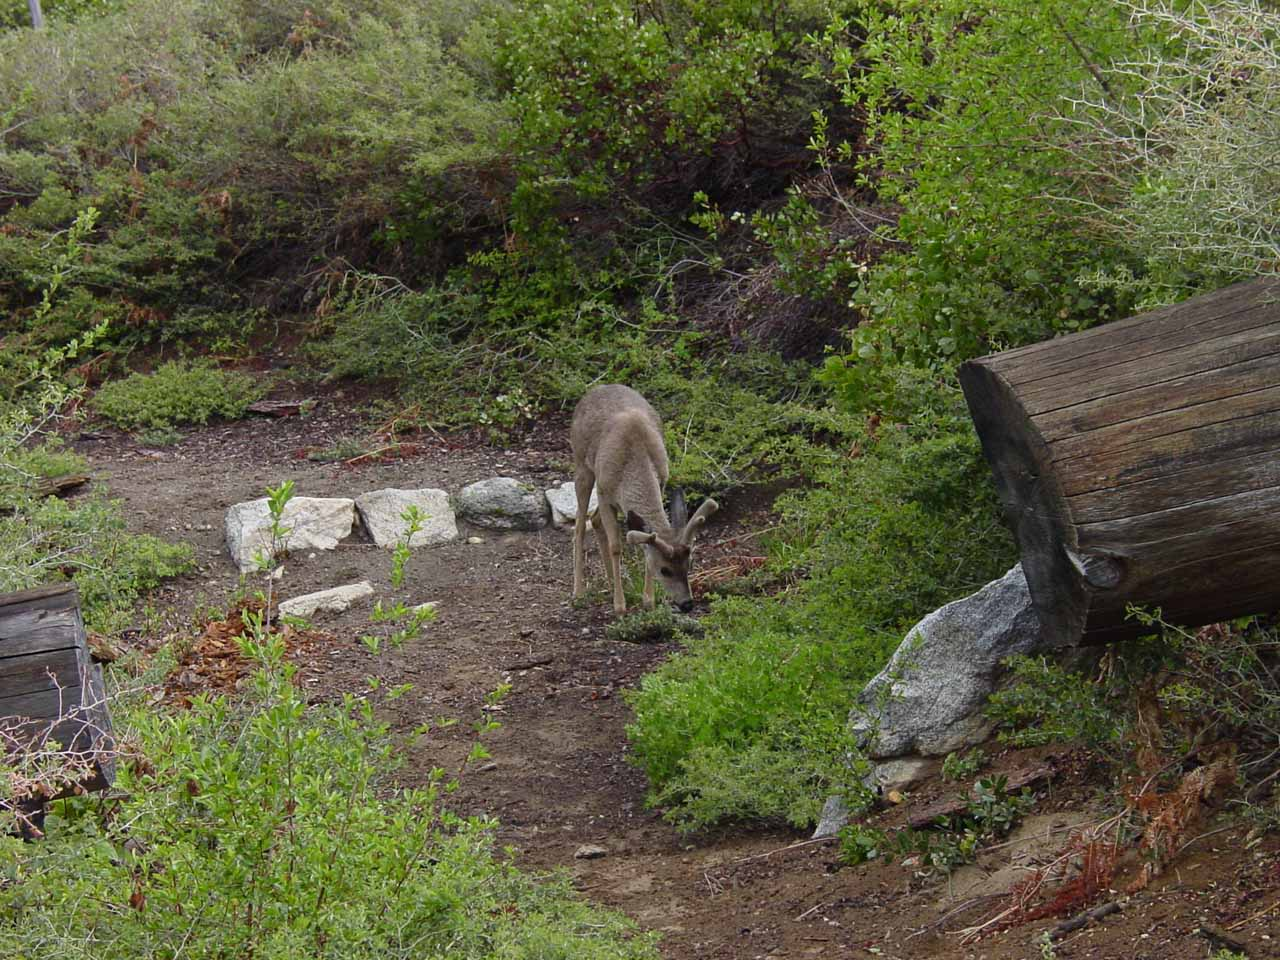 Deer at the trail junction near the start of the steep part of the descent